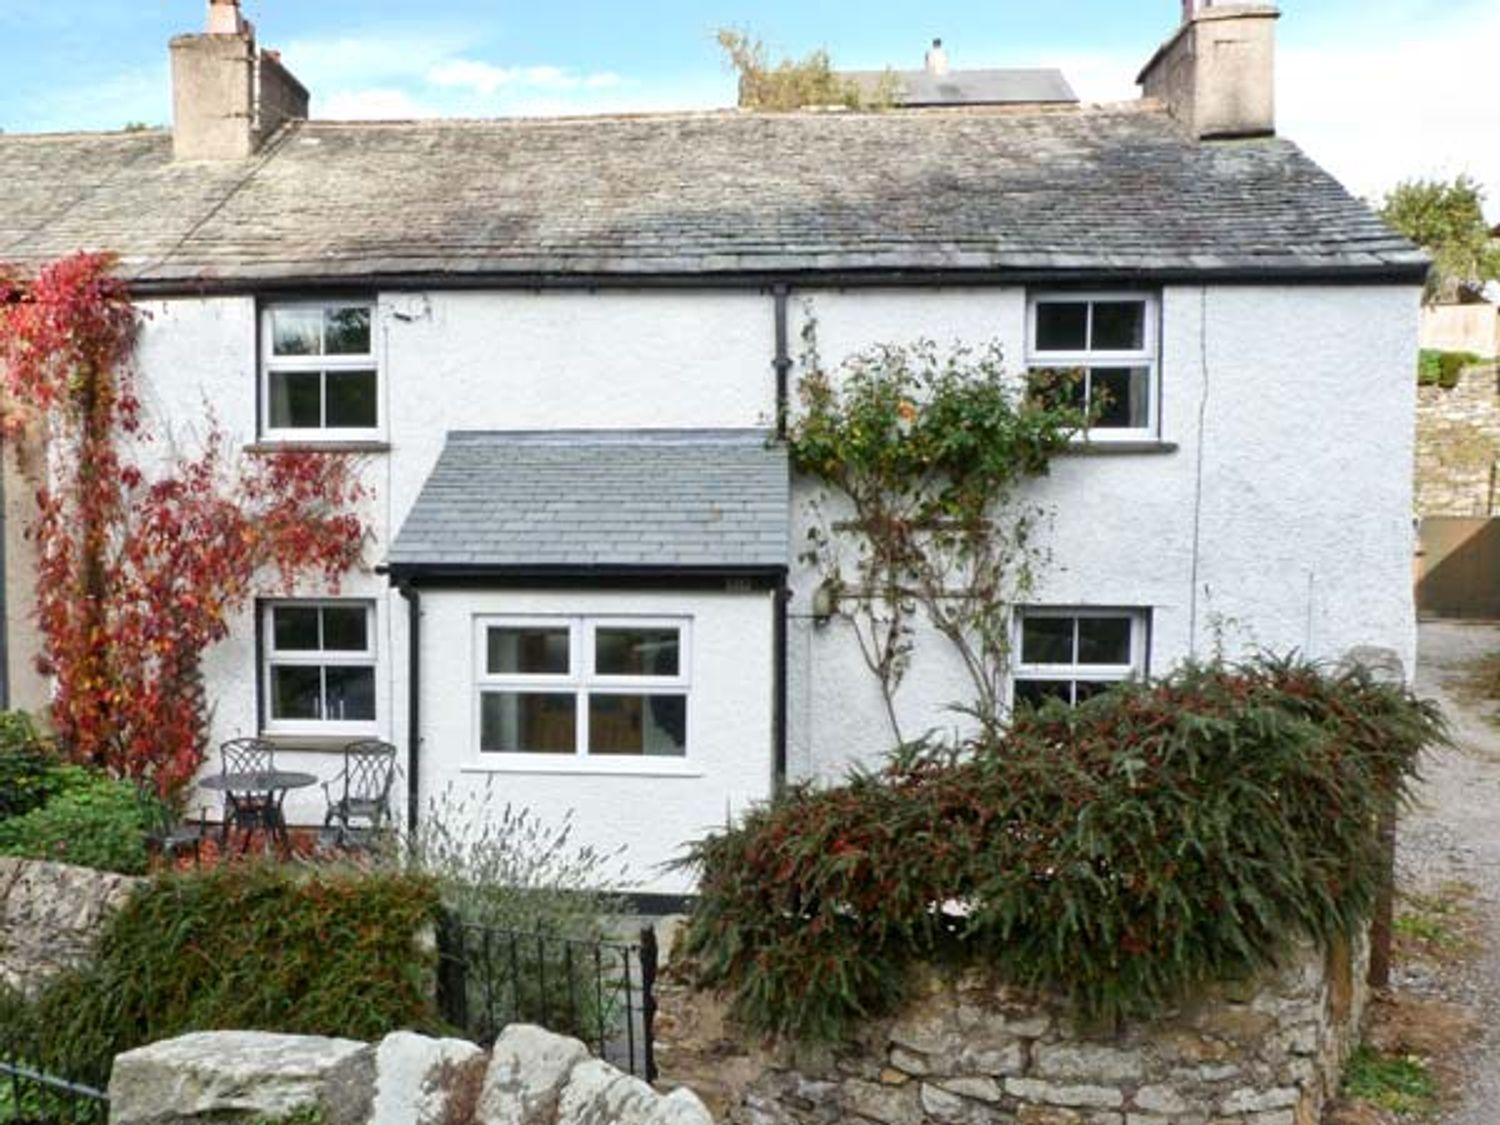 14 Low Row - Lake District - 29073 - photo 1